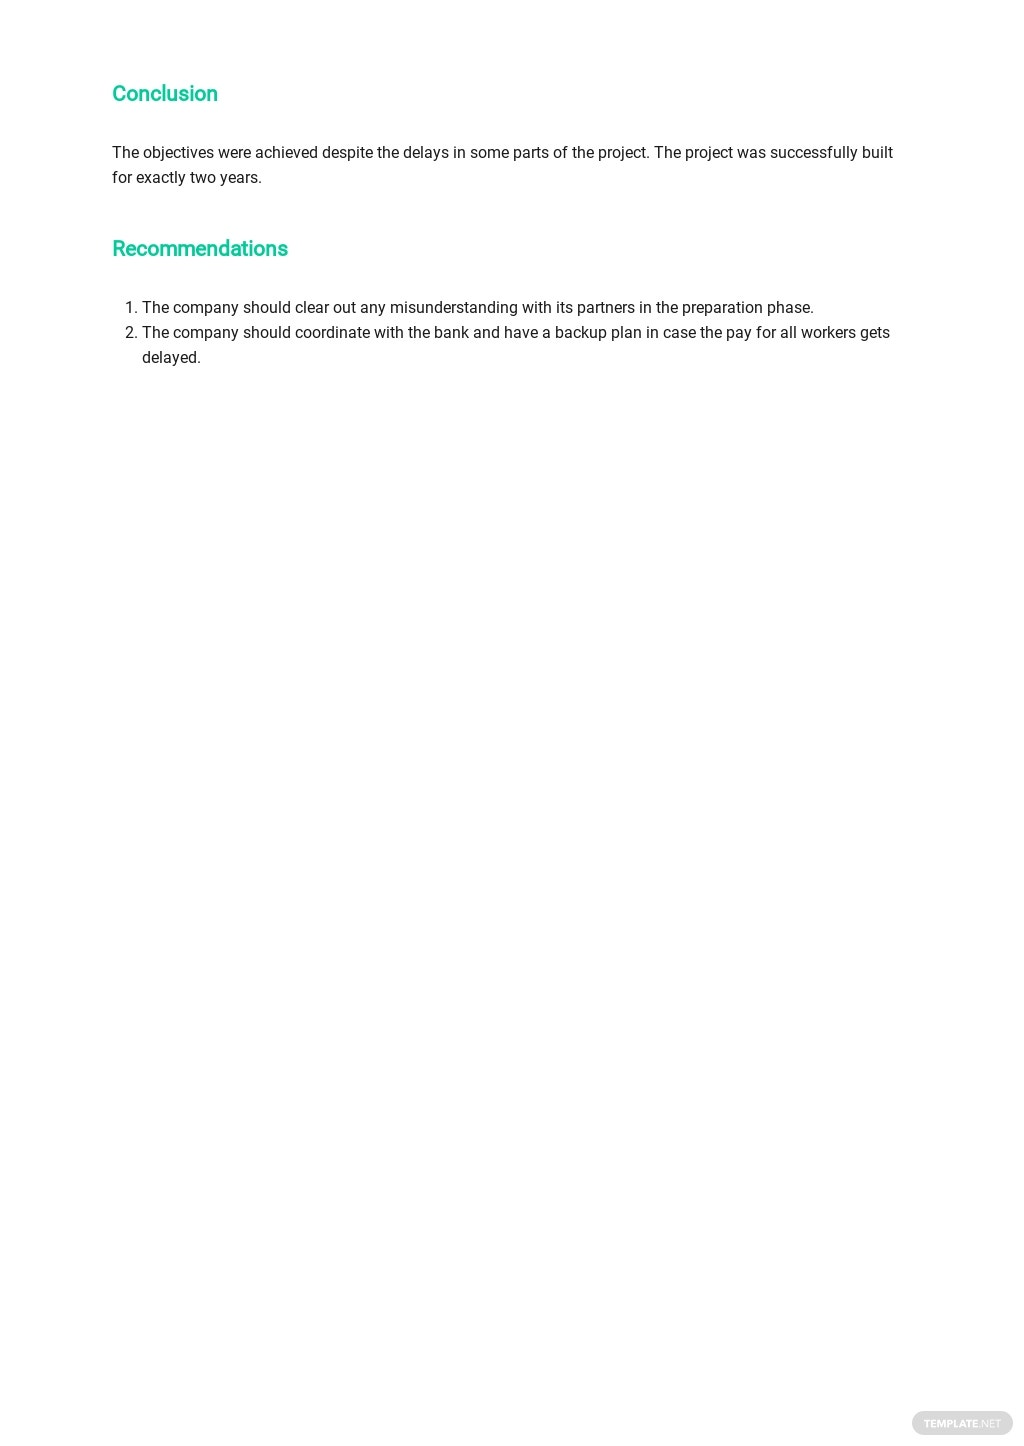 Project Report for Bank Loan Template 4.jpe